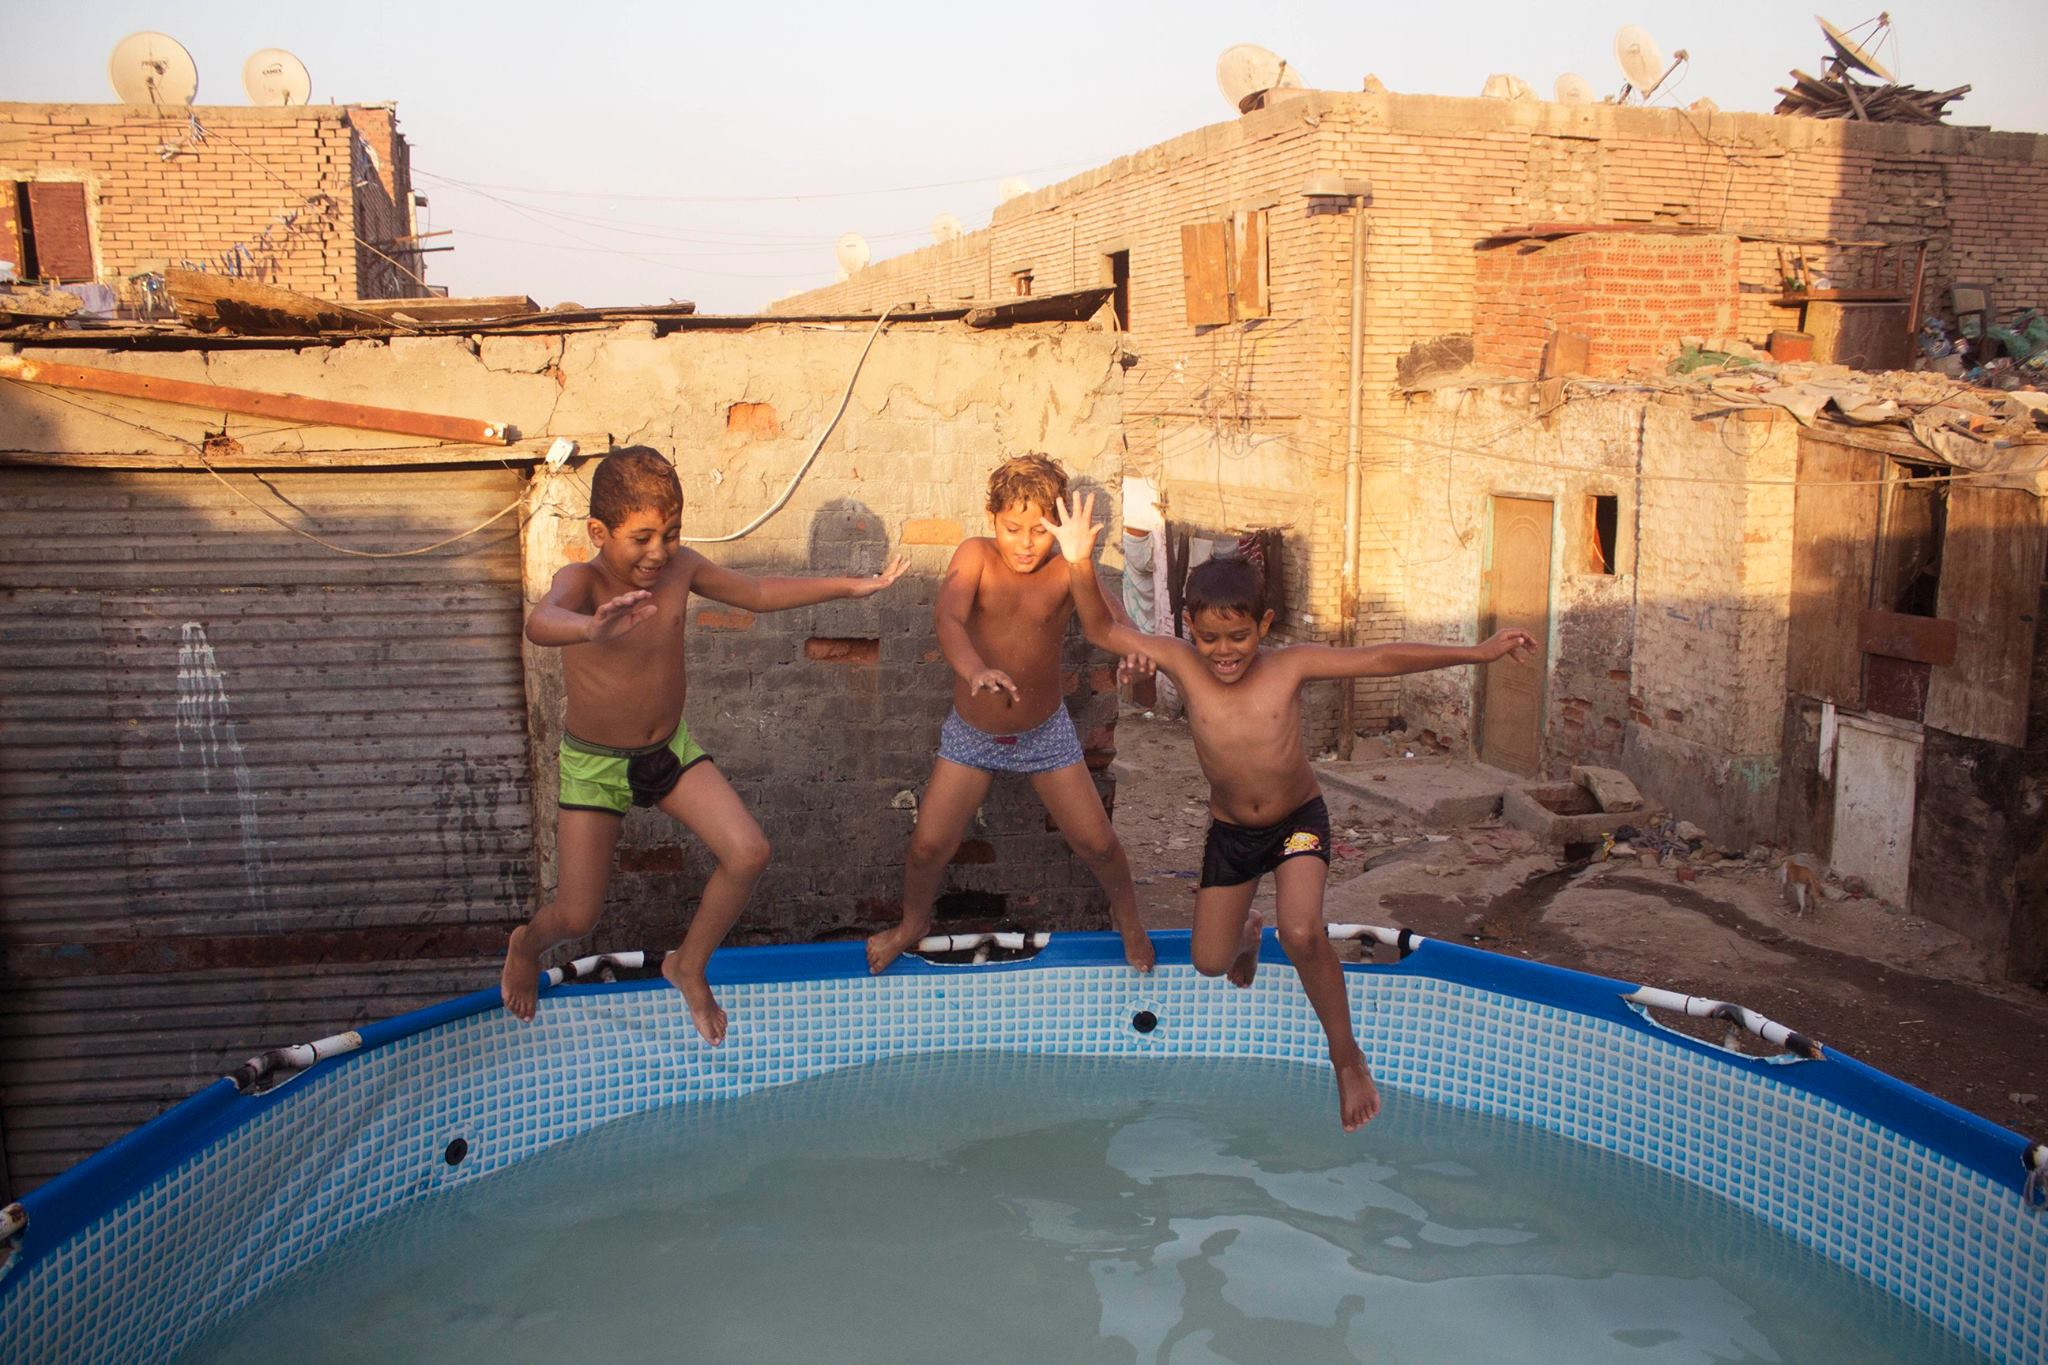 Children jumping in a 'public swimming pool' in Dwayka, Cairo.  Credit: Mostafa Darwish